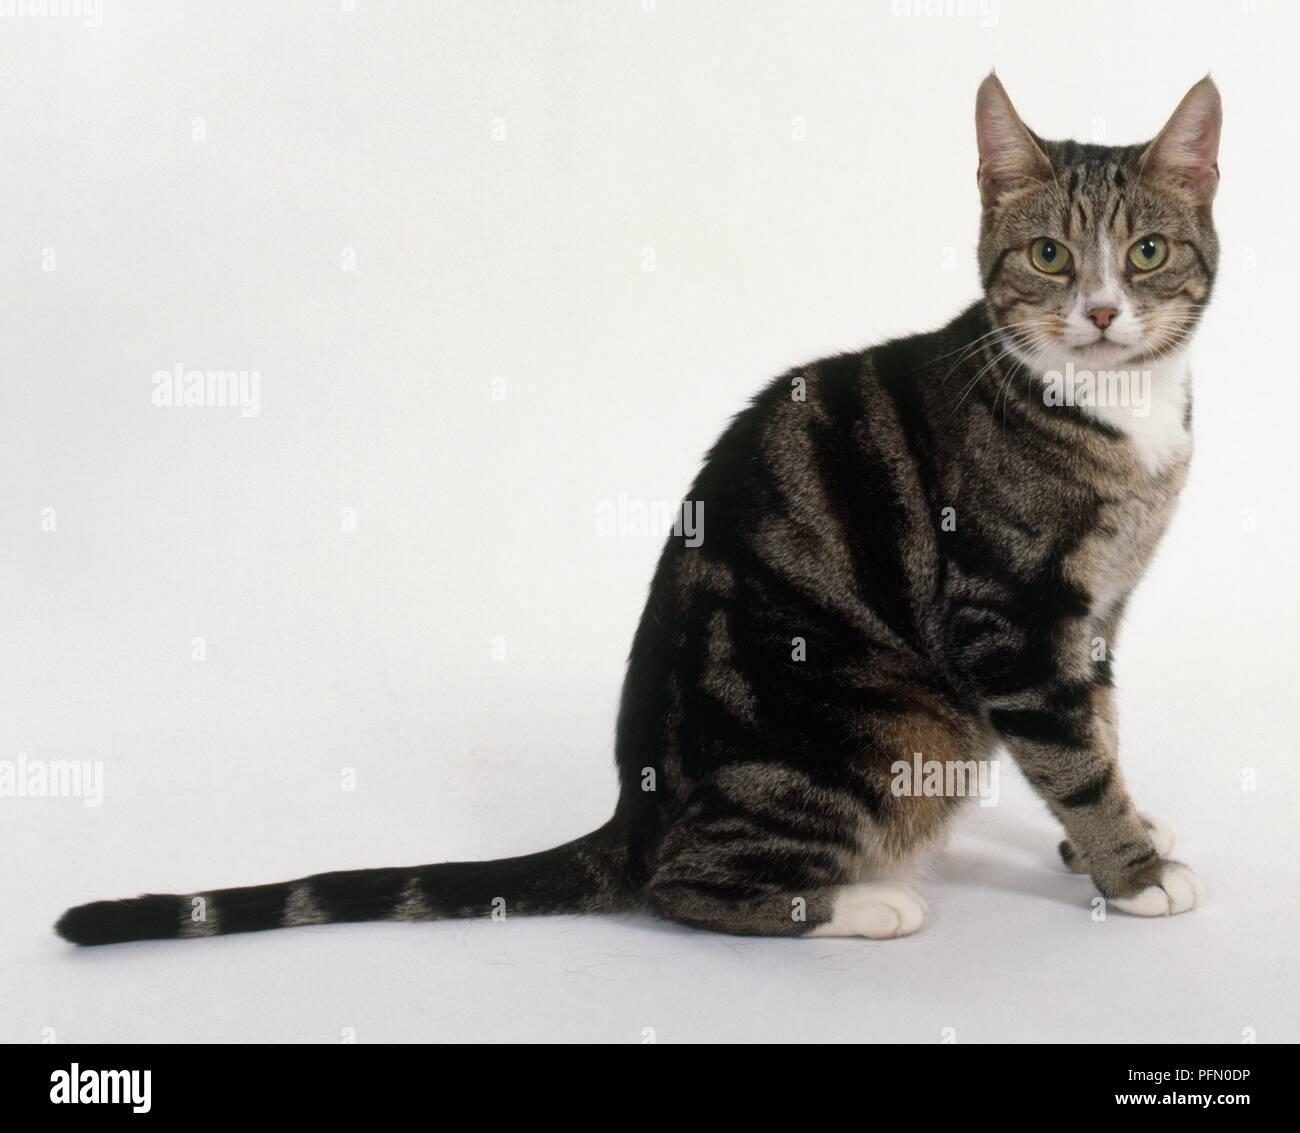 Brown and white classic tabby cat, sitting - Stock Image